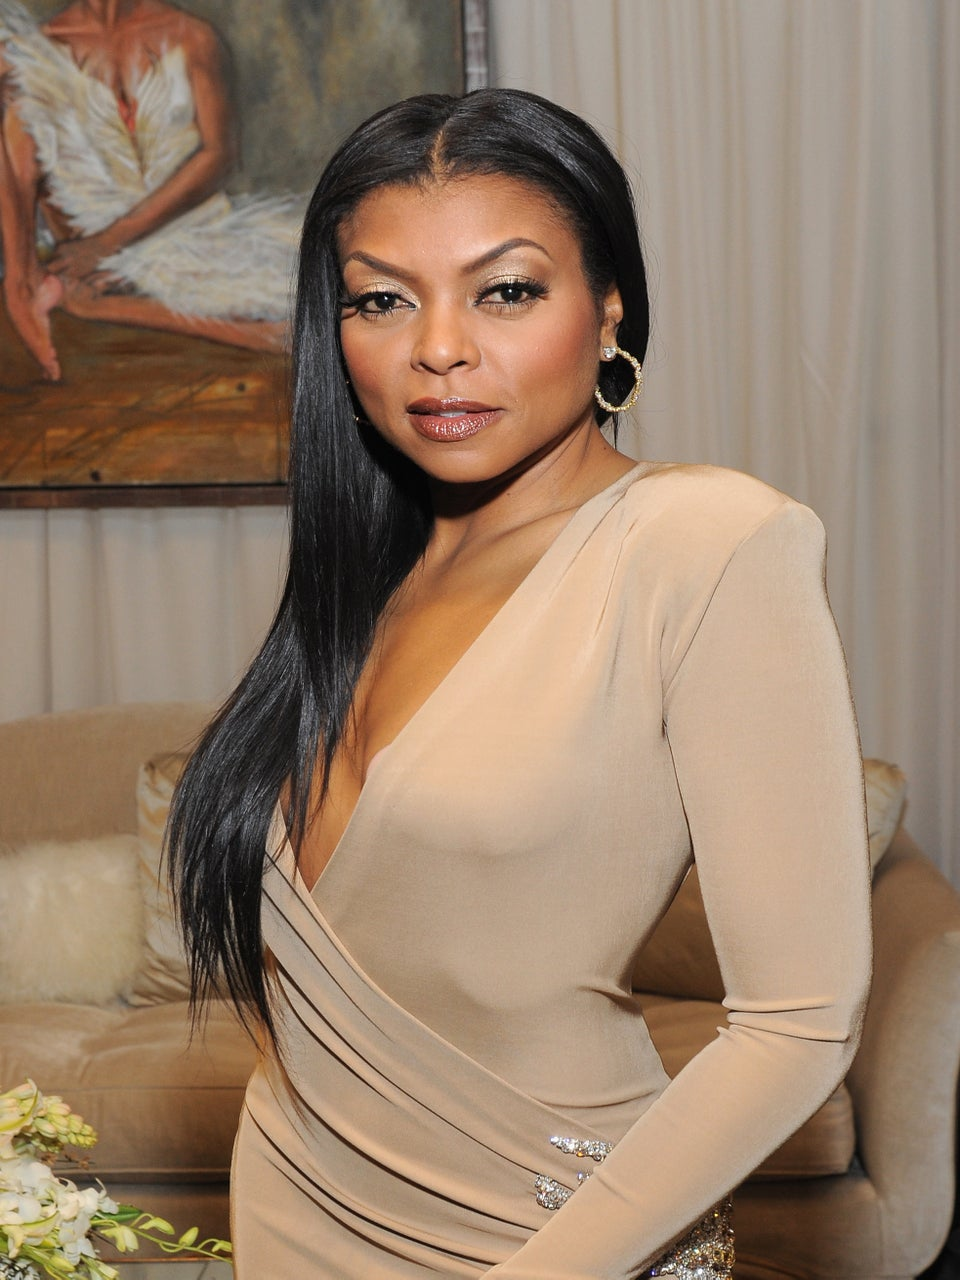 Taraji P. Henson Talks Domestic Abuse At The Hands of Her 'Forever Man' In Upcoming Memoir